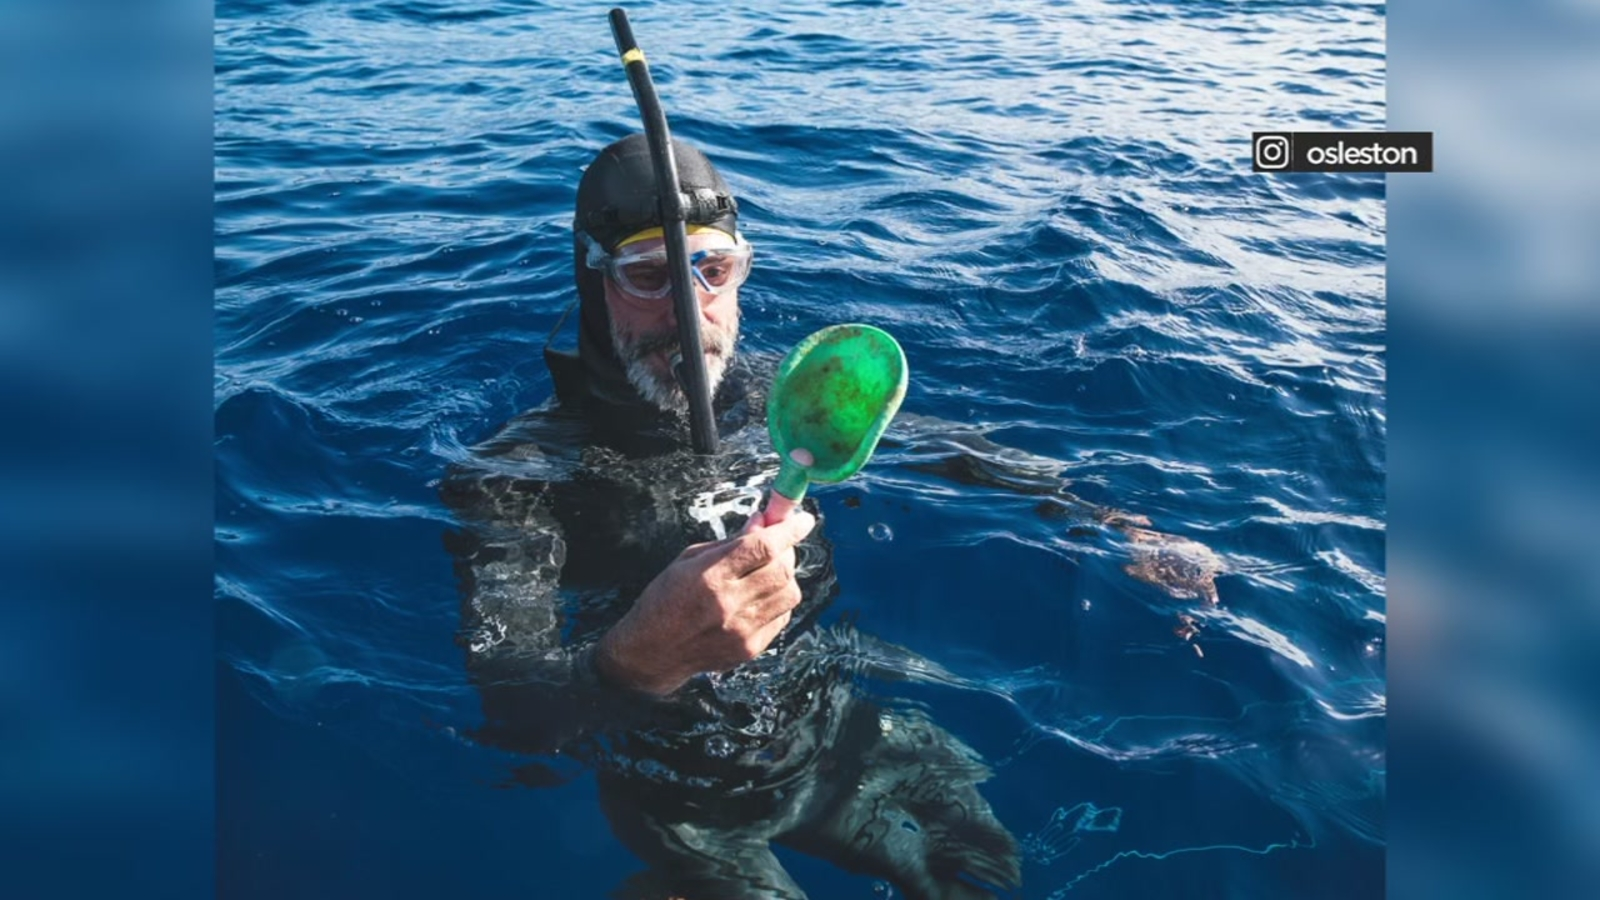 French swimmer continues journey from Hawaii to San Francisco through Great Pacific garbage patch